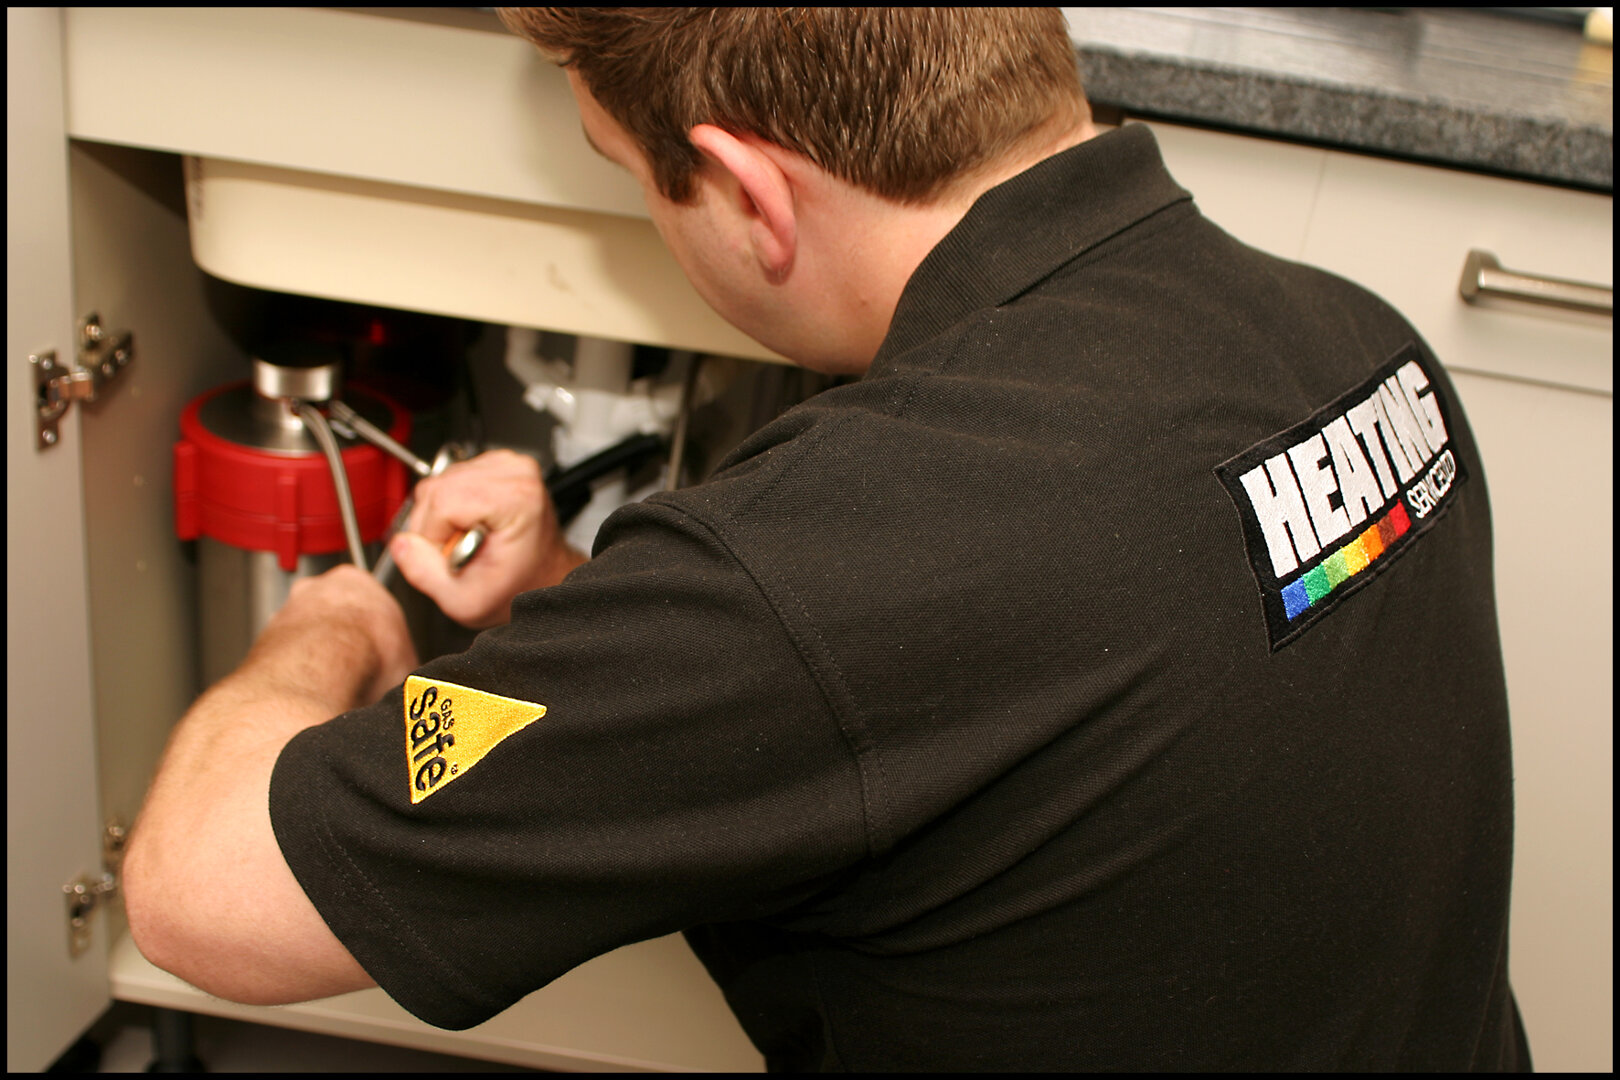 Plumbers Boiler Installation Service and Repairs and Bathroom Design and Installation by Heating Services Ltd in Woldingham (3)